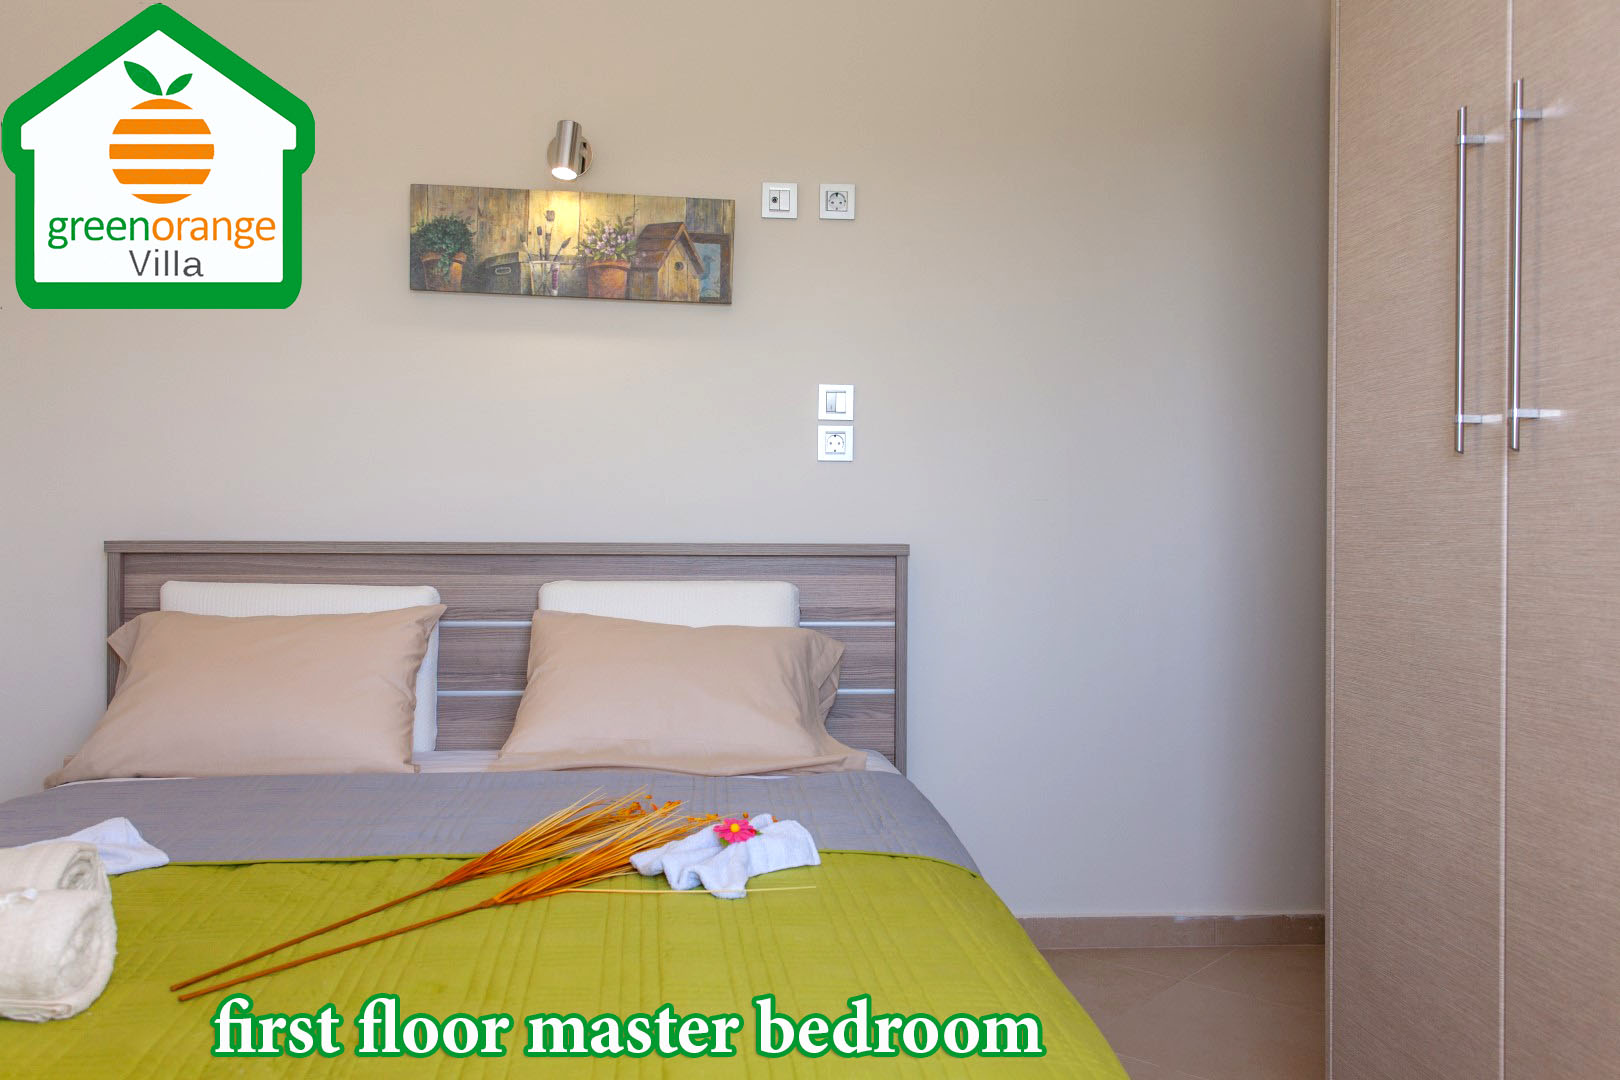 first-floor-master-bedroom-chania-crete-green-orange-villa-2